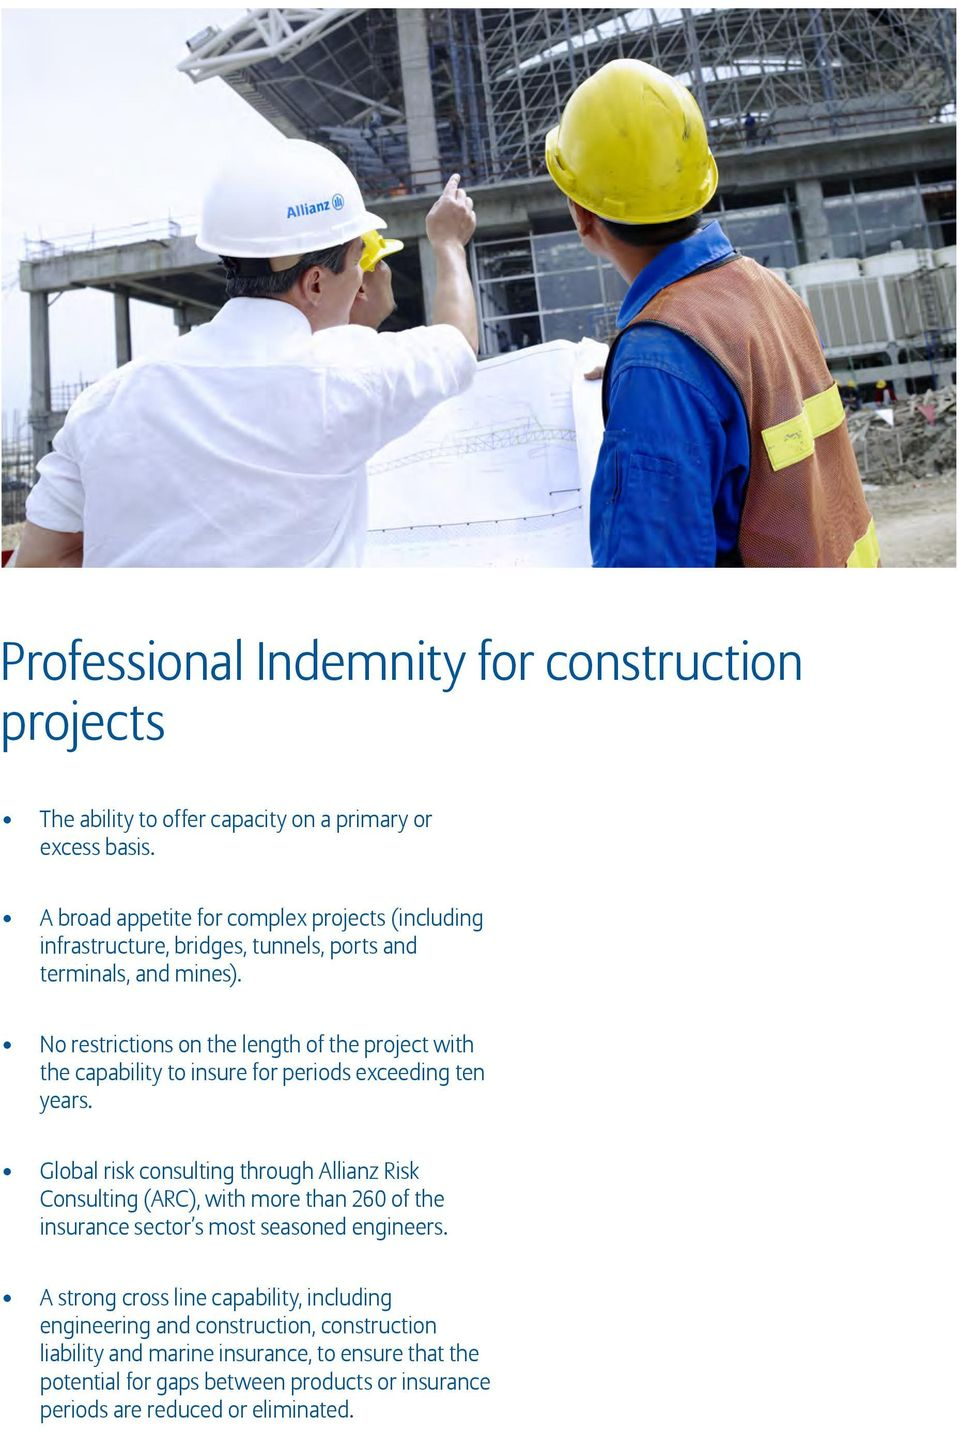 No restrictions on the length of the project with the capability to insure for periods exceeding ten years.